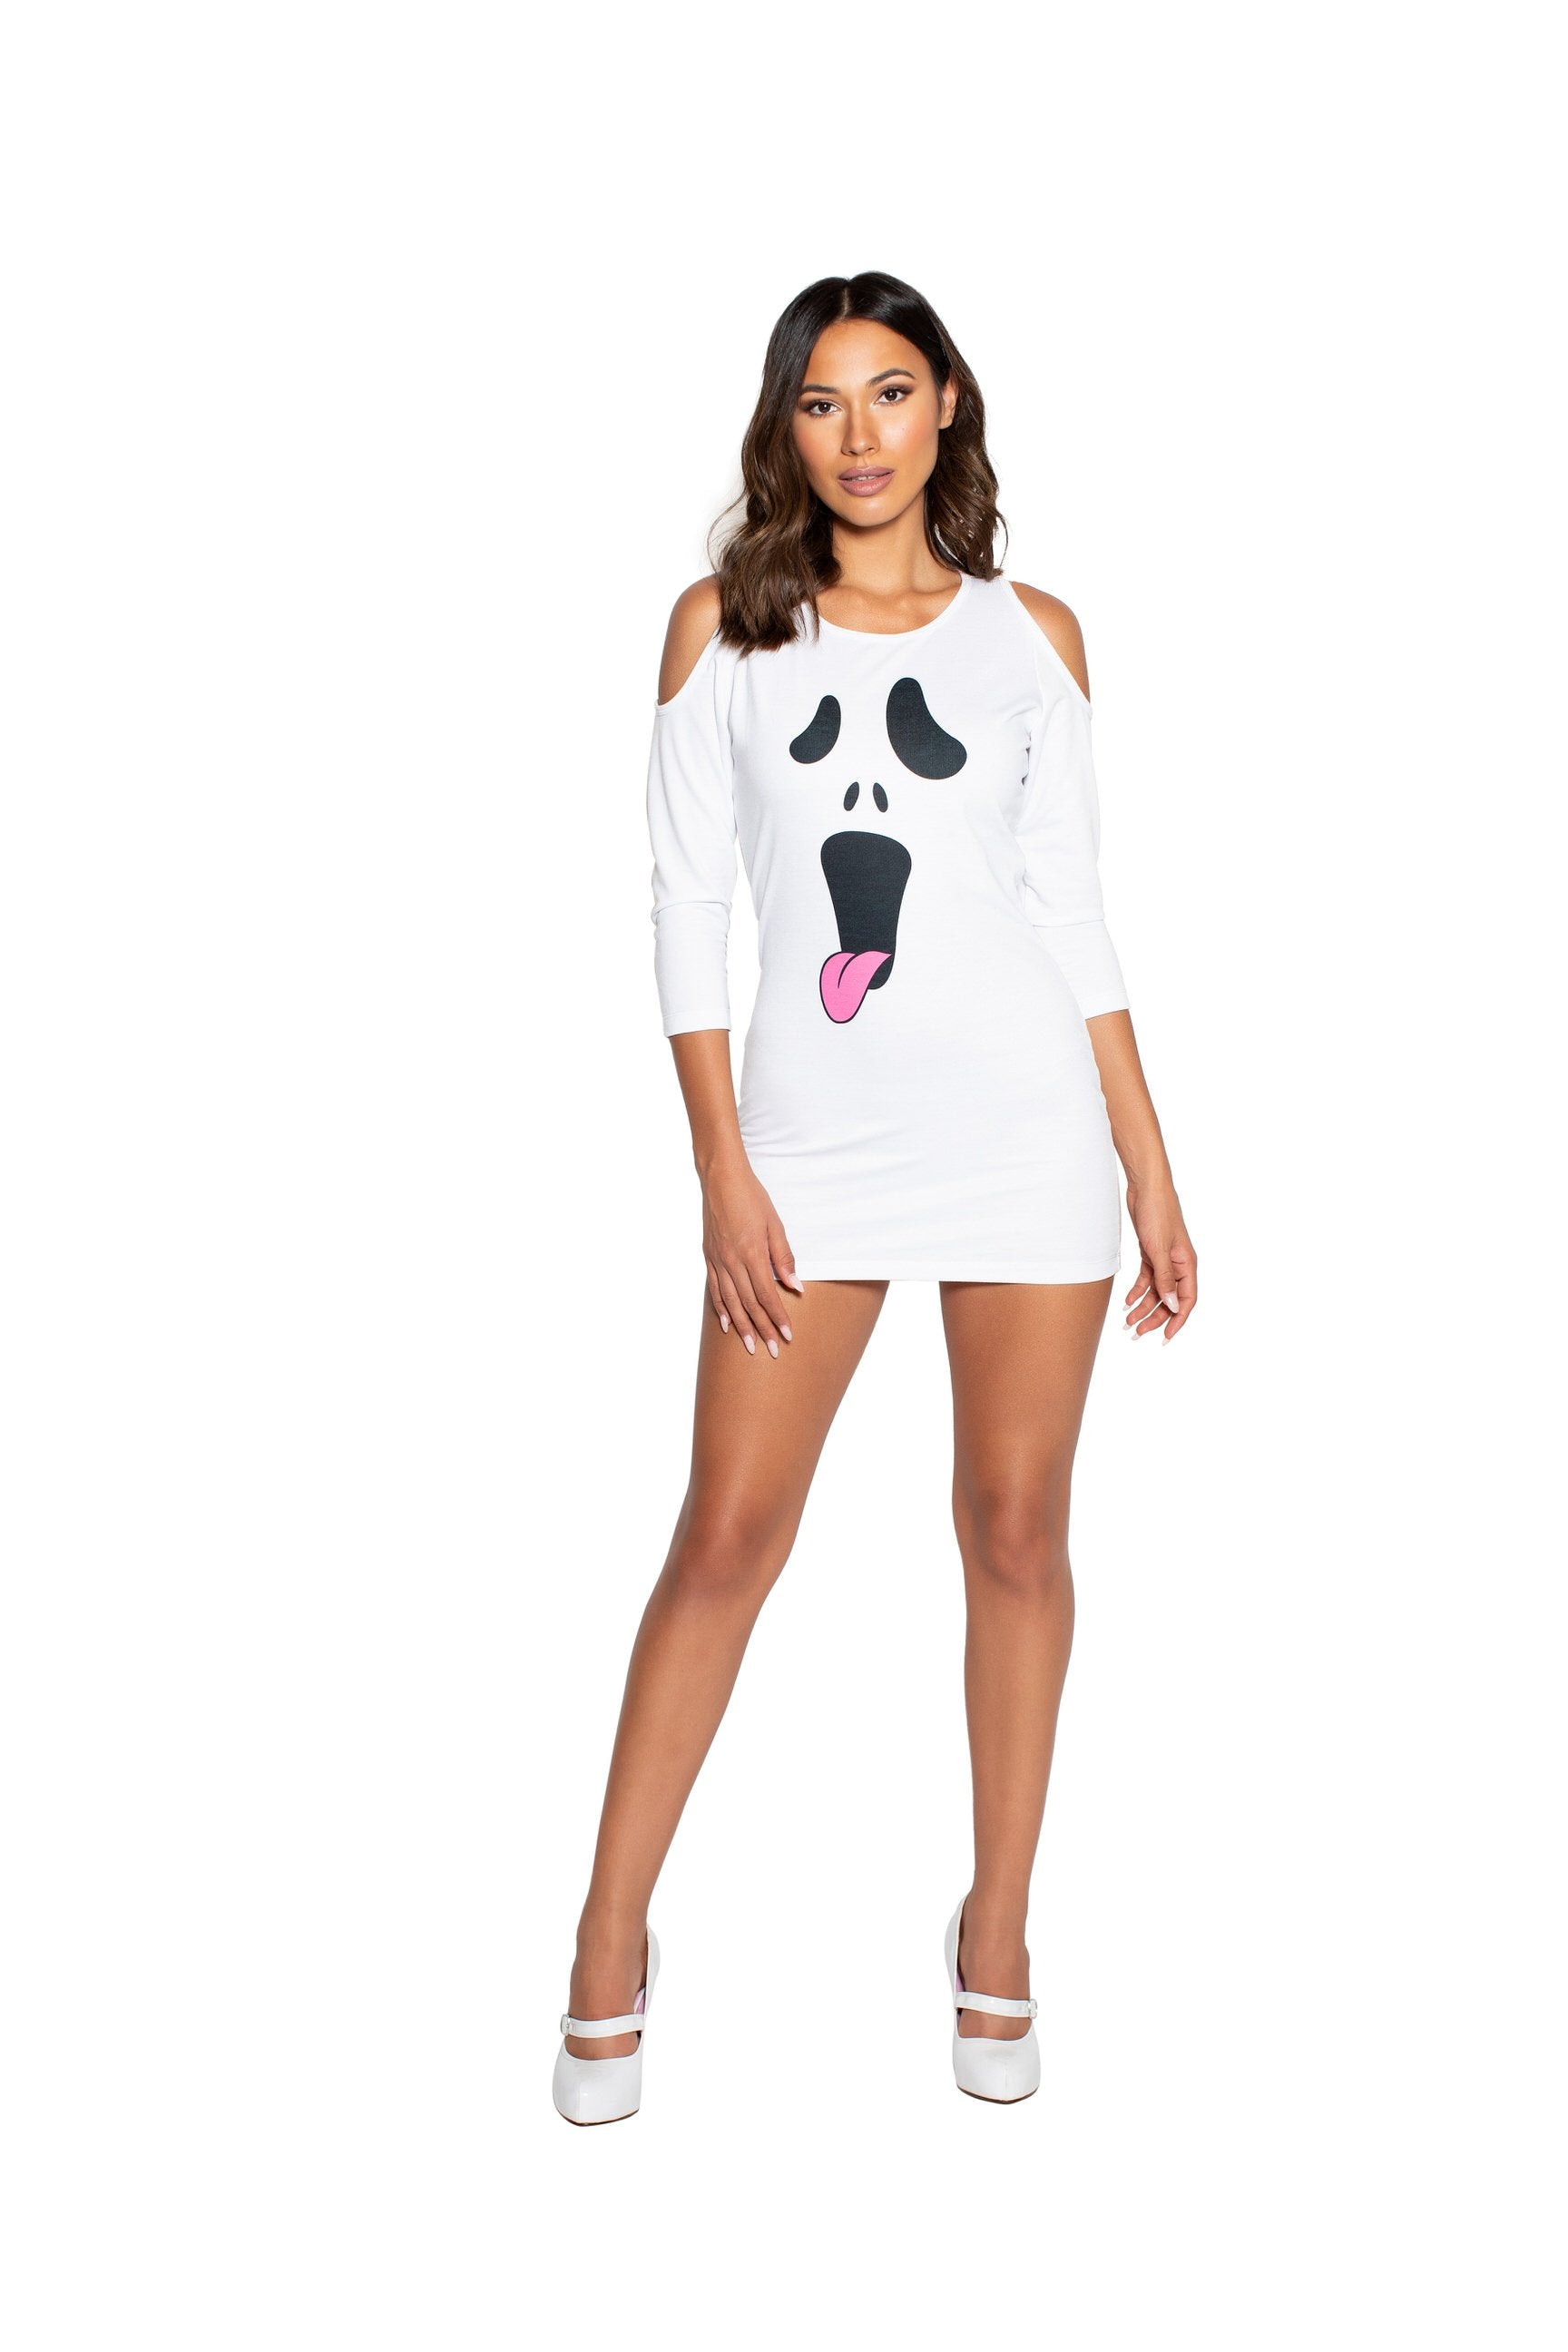 1pc Silly Ghost Dress